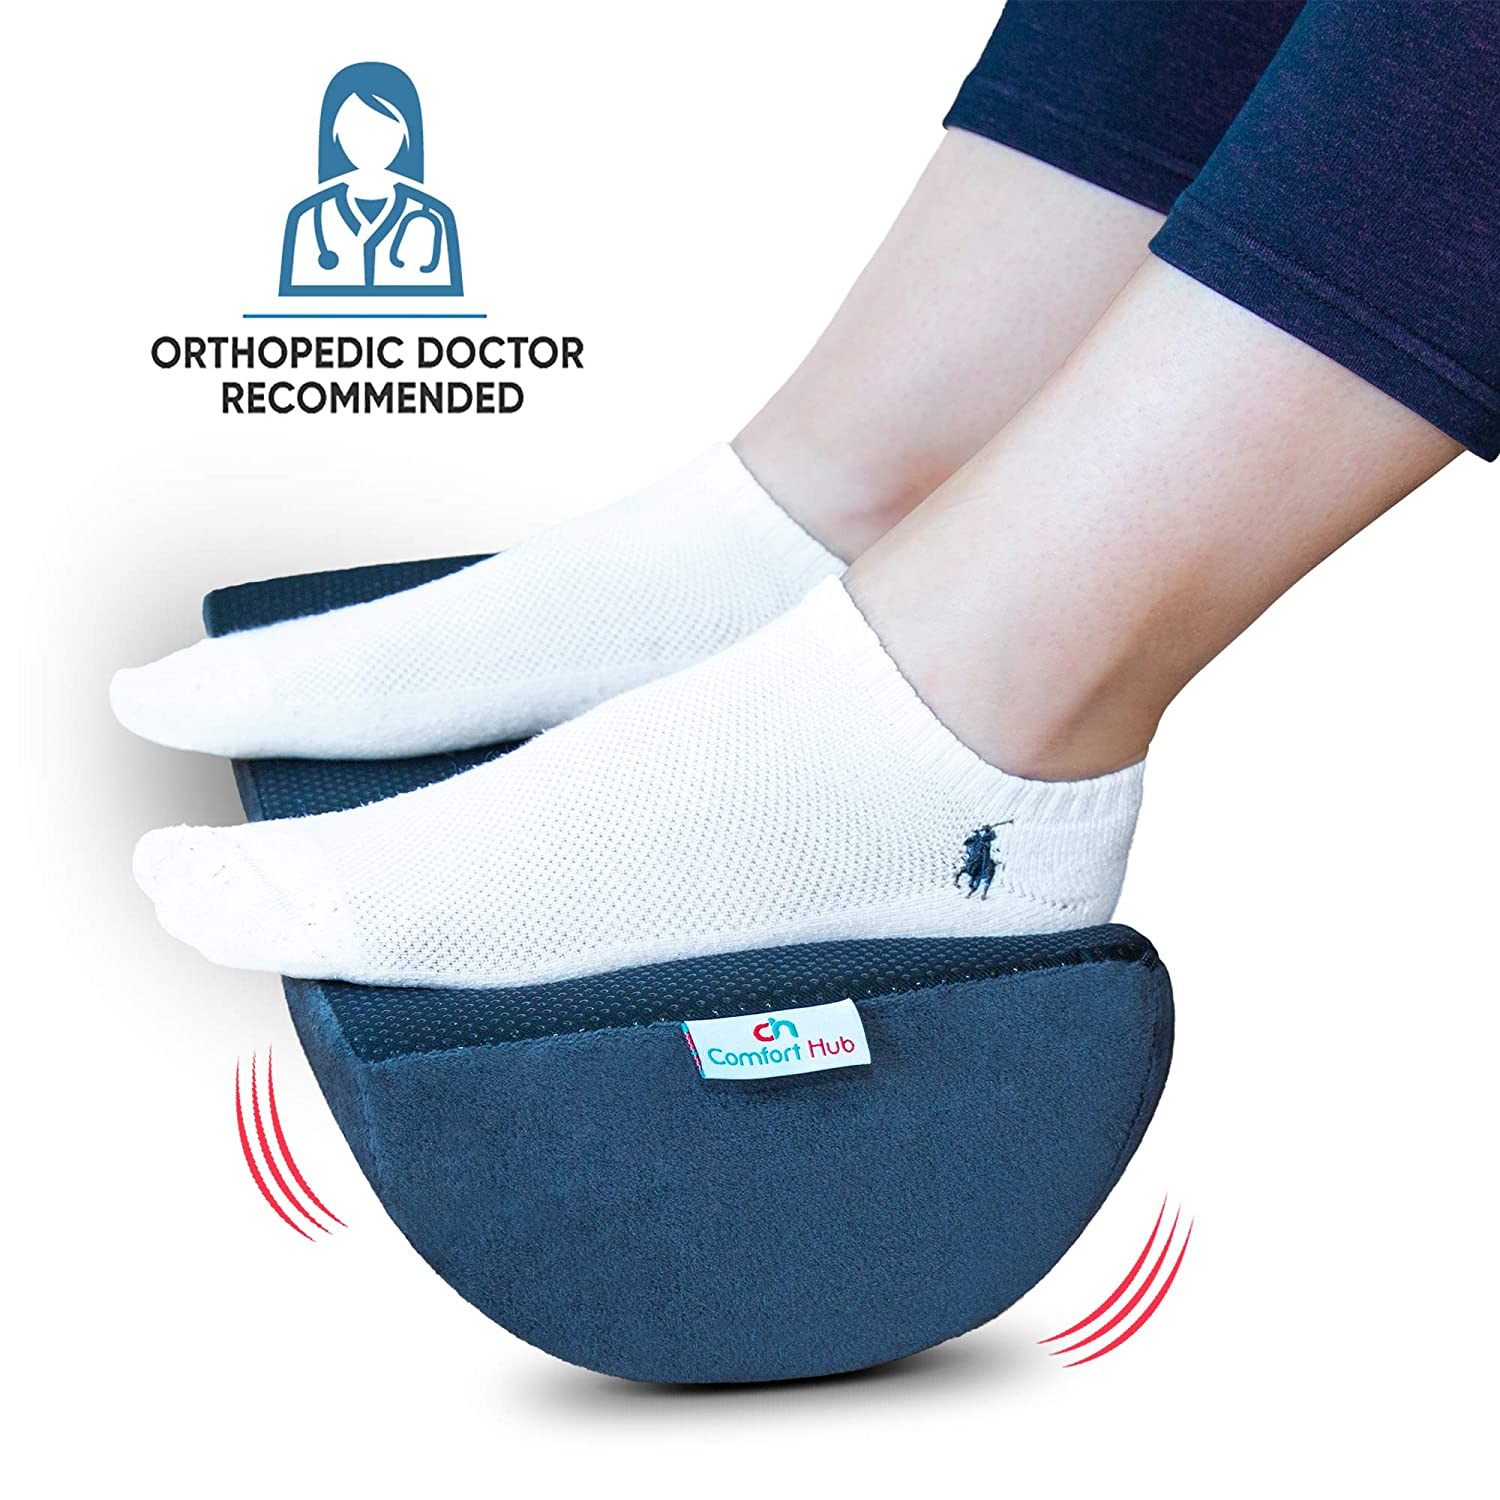 Comfort Hub Ergonomic Foot Rest Cushion – Gel-Enhanced Memory Foam Under Desk Footrest Pad for Your Home and Office Workstation – Get Relief from Knee and Back Pain with This Ergo Foot Support